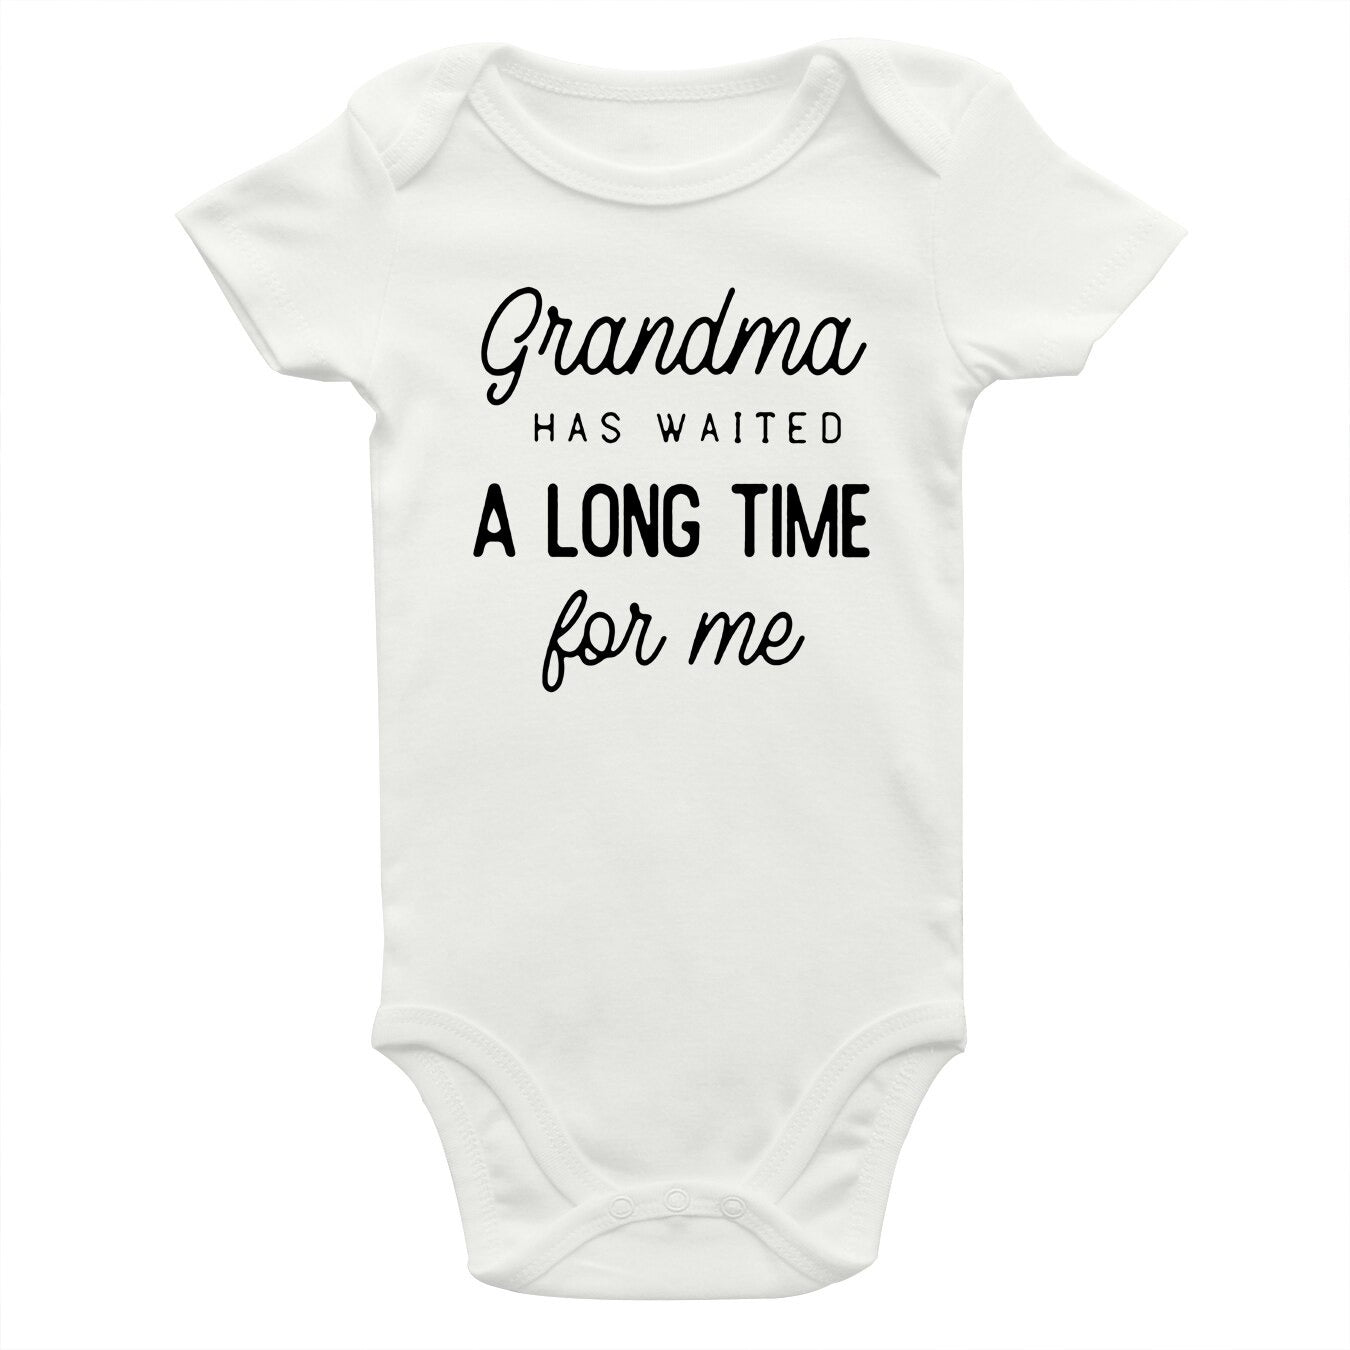 ong-time-letter-printing-new-born-baby-c_description-1